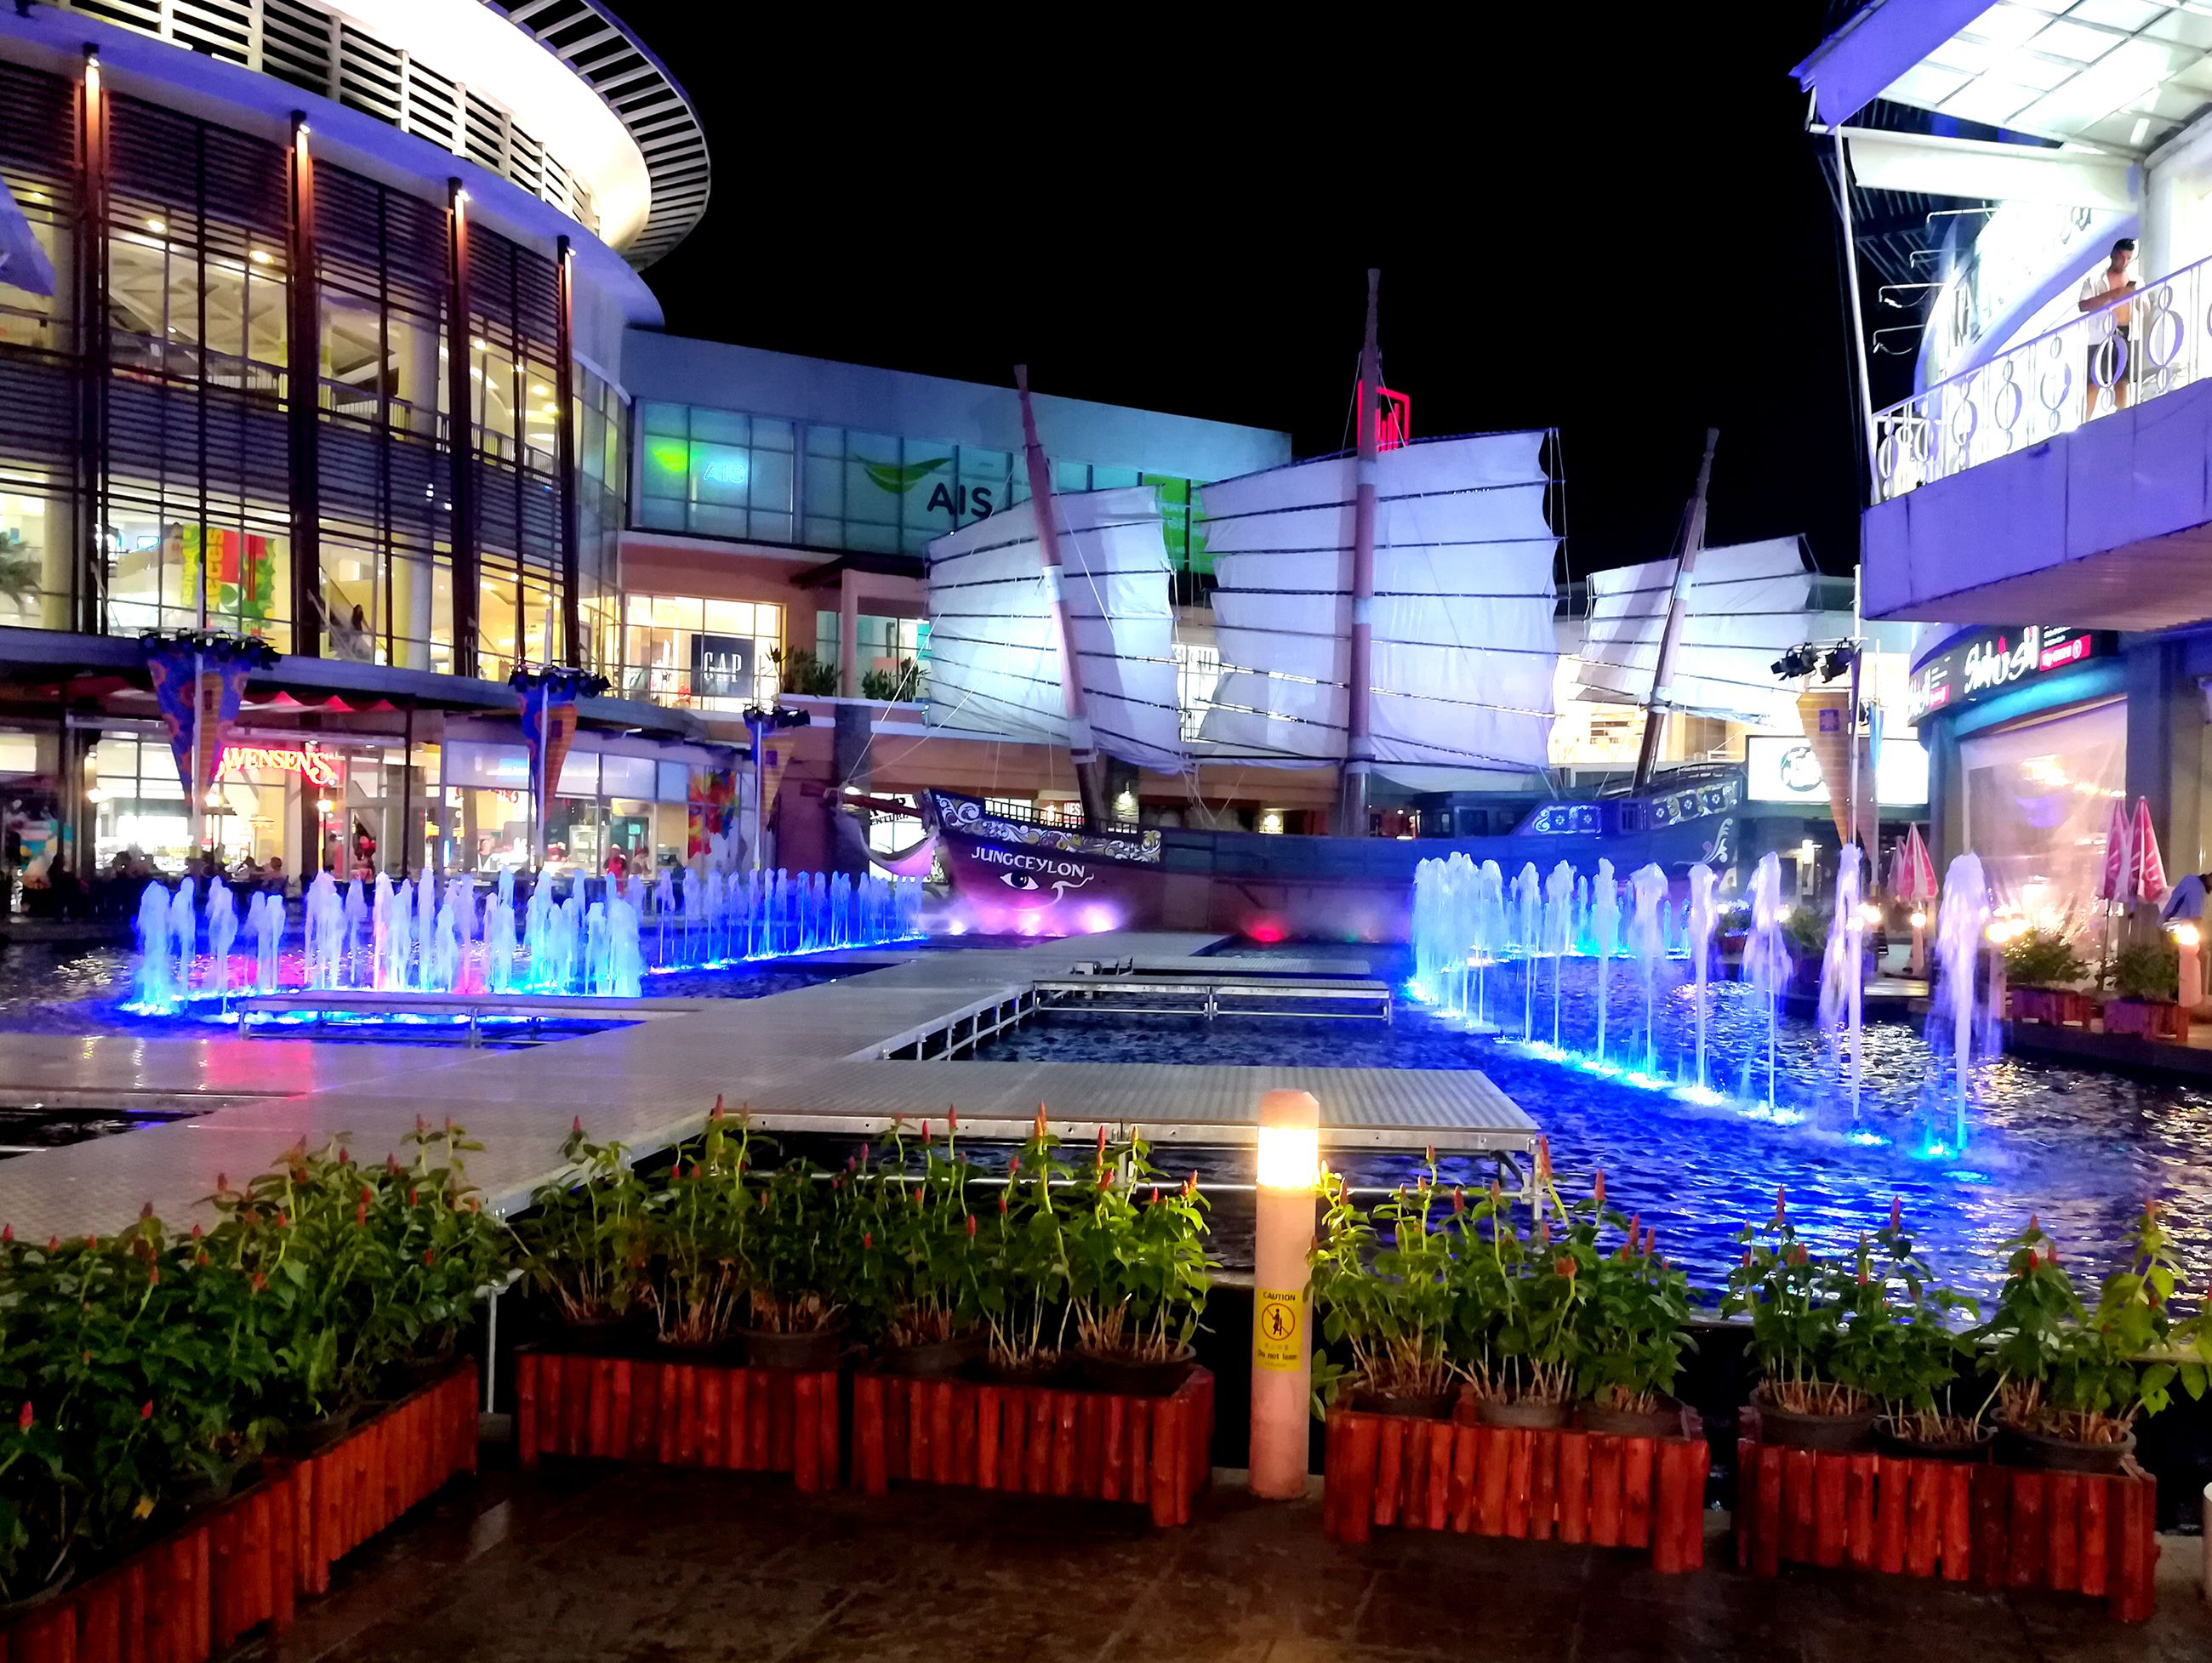 The Jungceylon shopping centre in the town Patong in Phuket Province, Thailand.